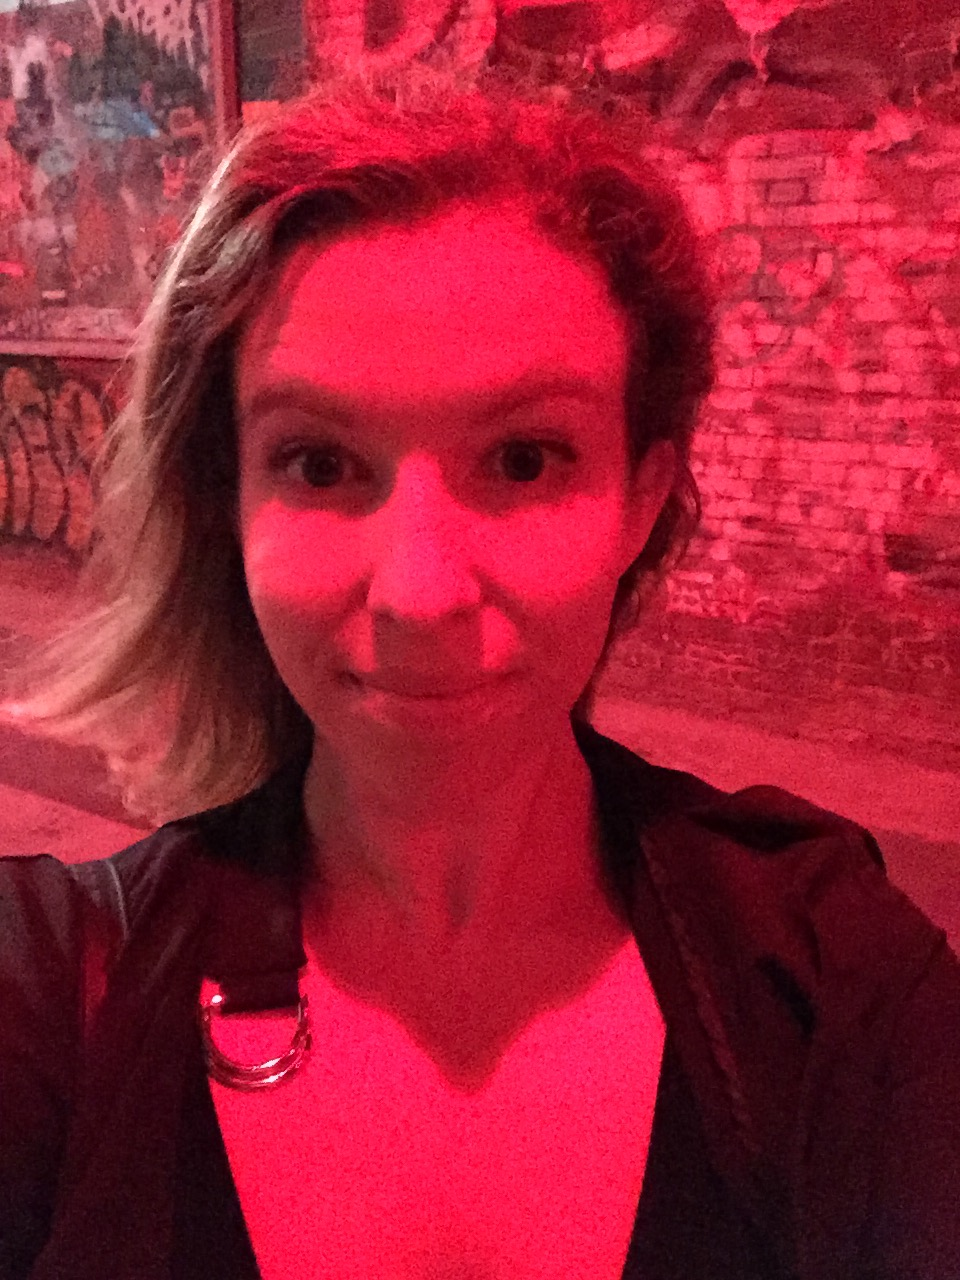 Very red selfie near da club.